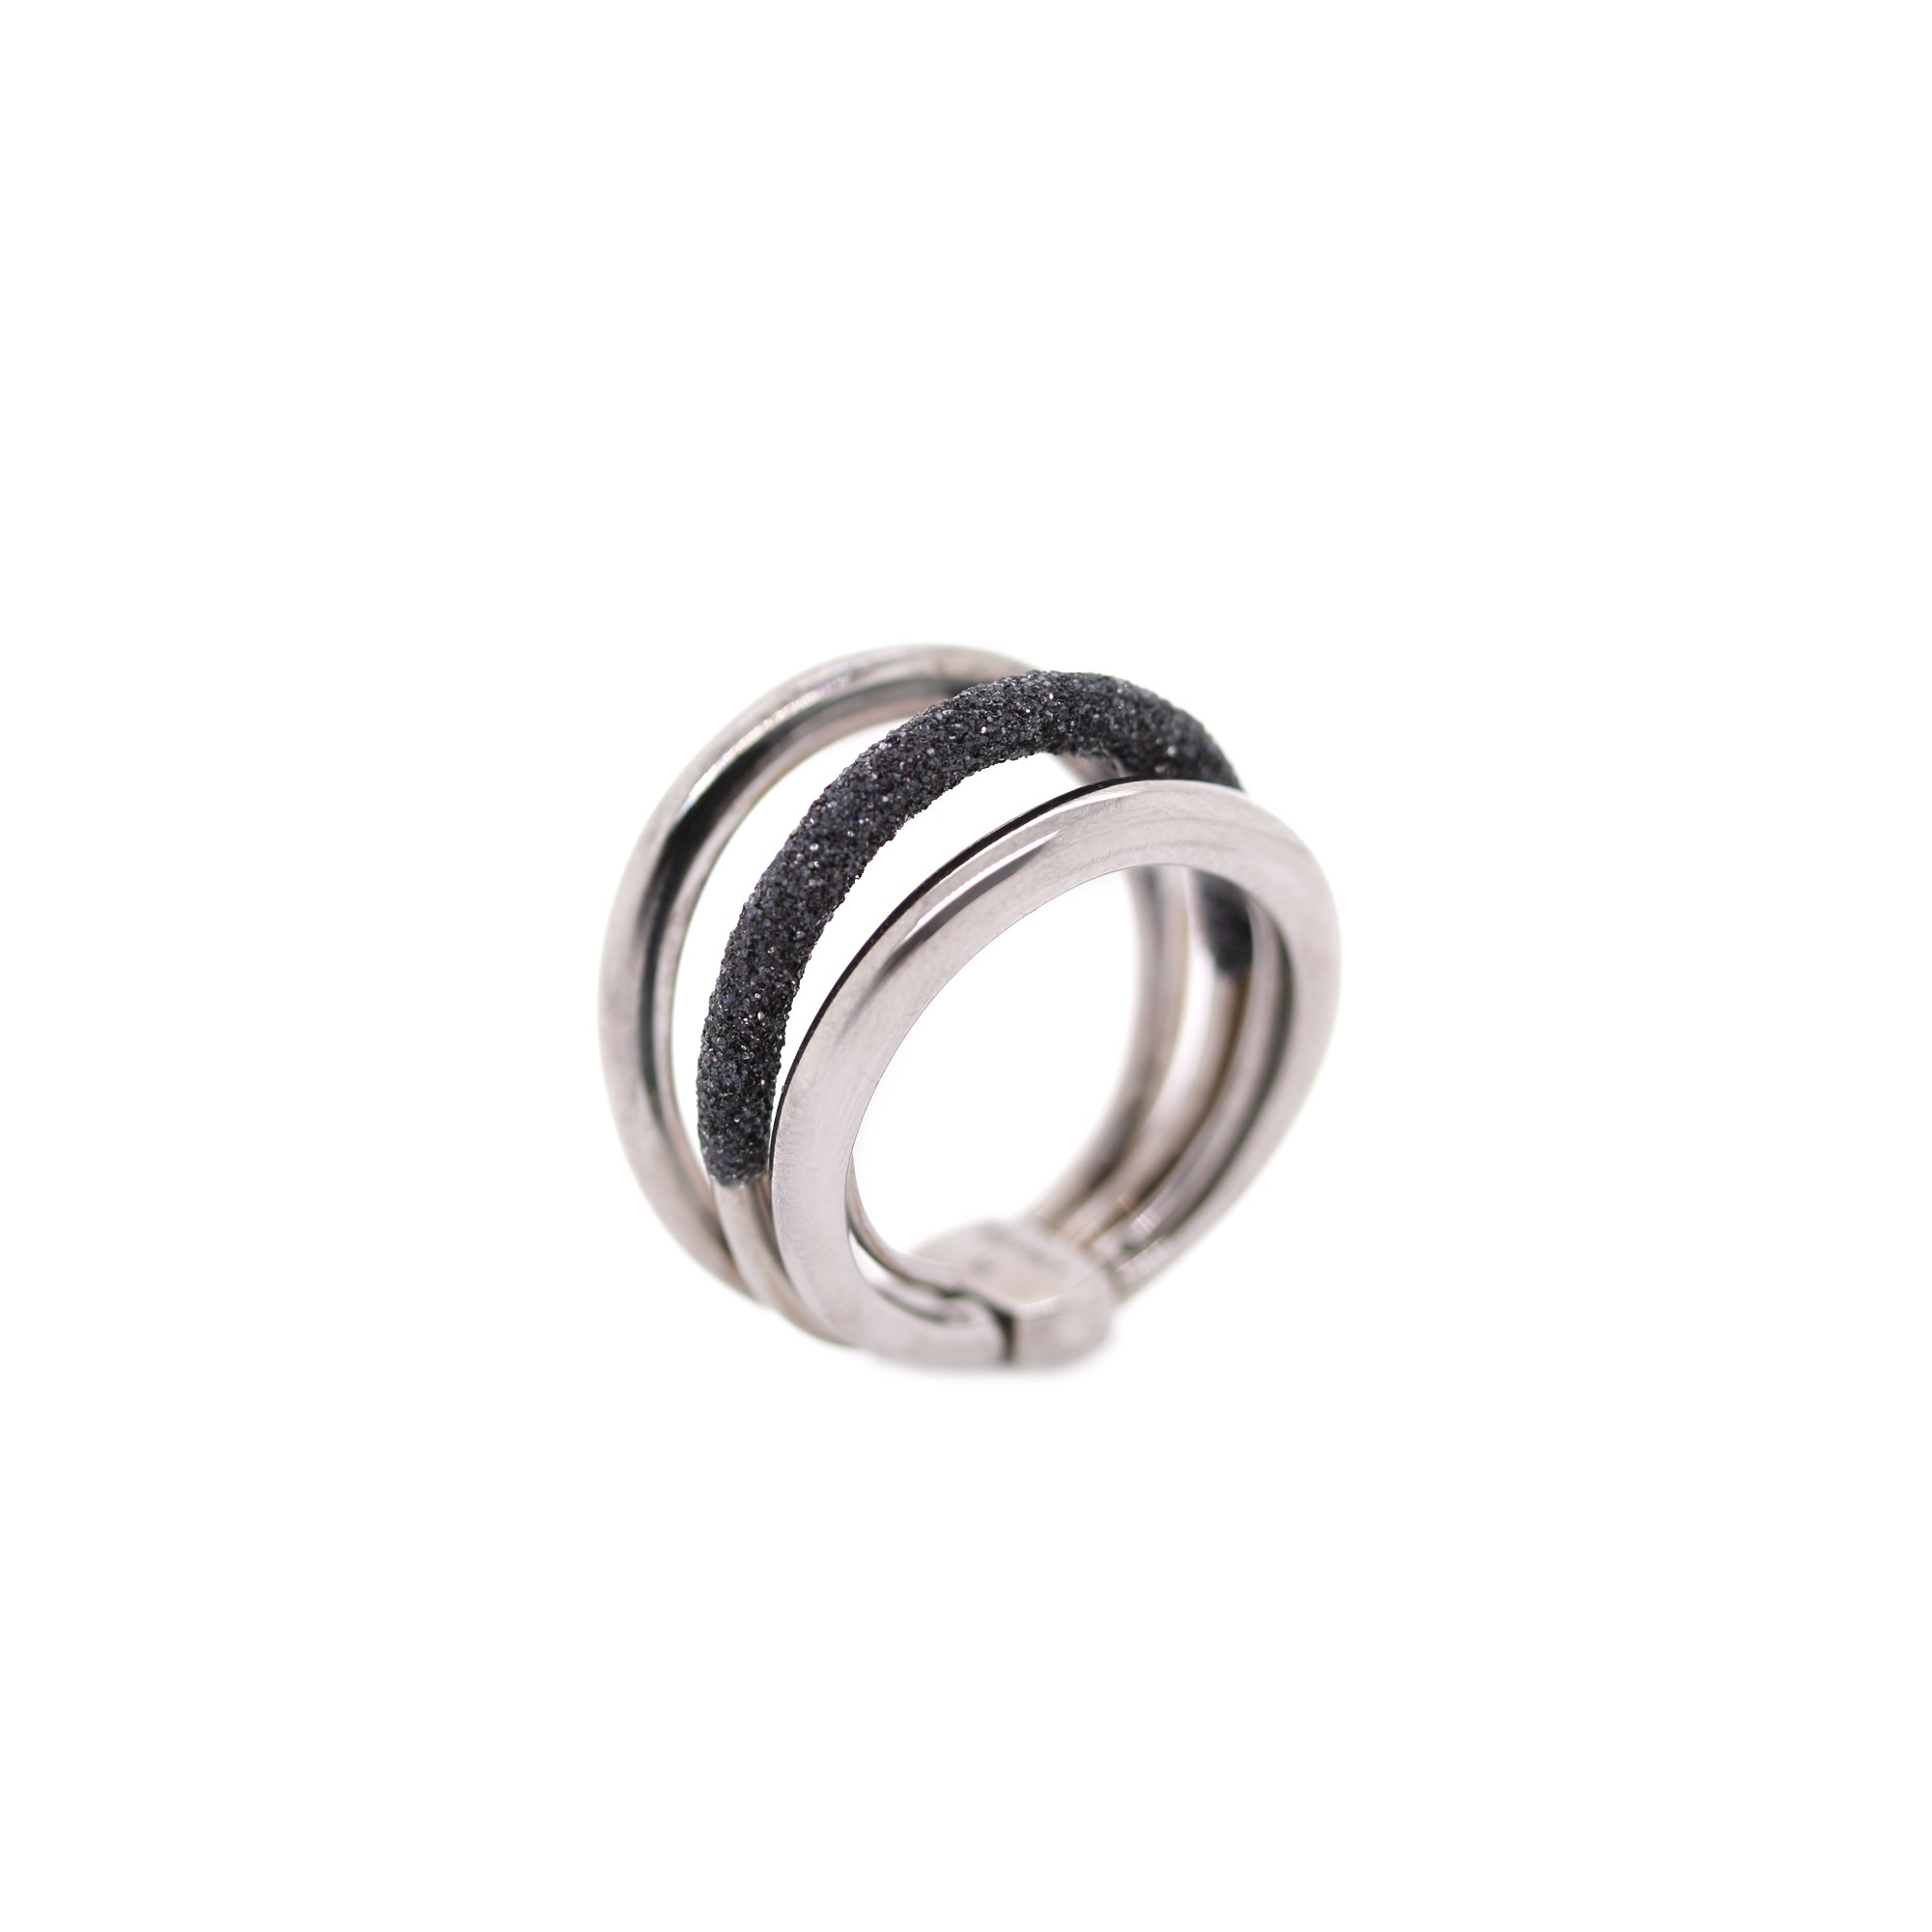 Pesavento  Sterling Silver  Black Polvere Silver Rings without Stones WPLVA720/M